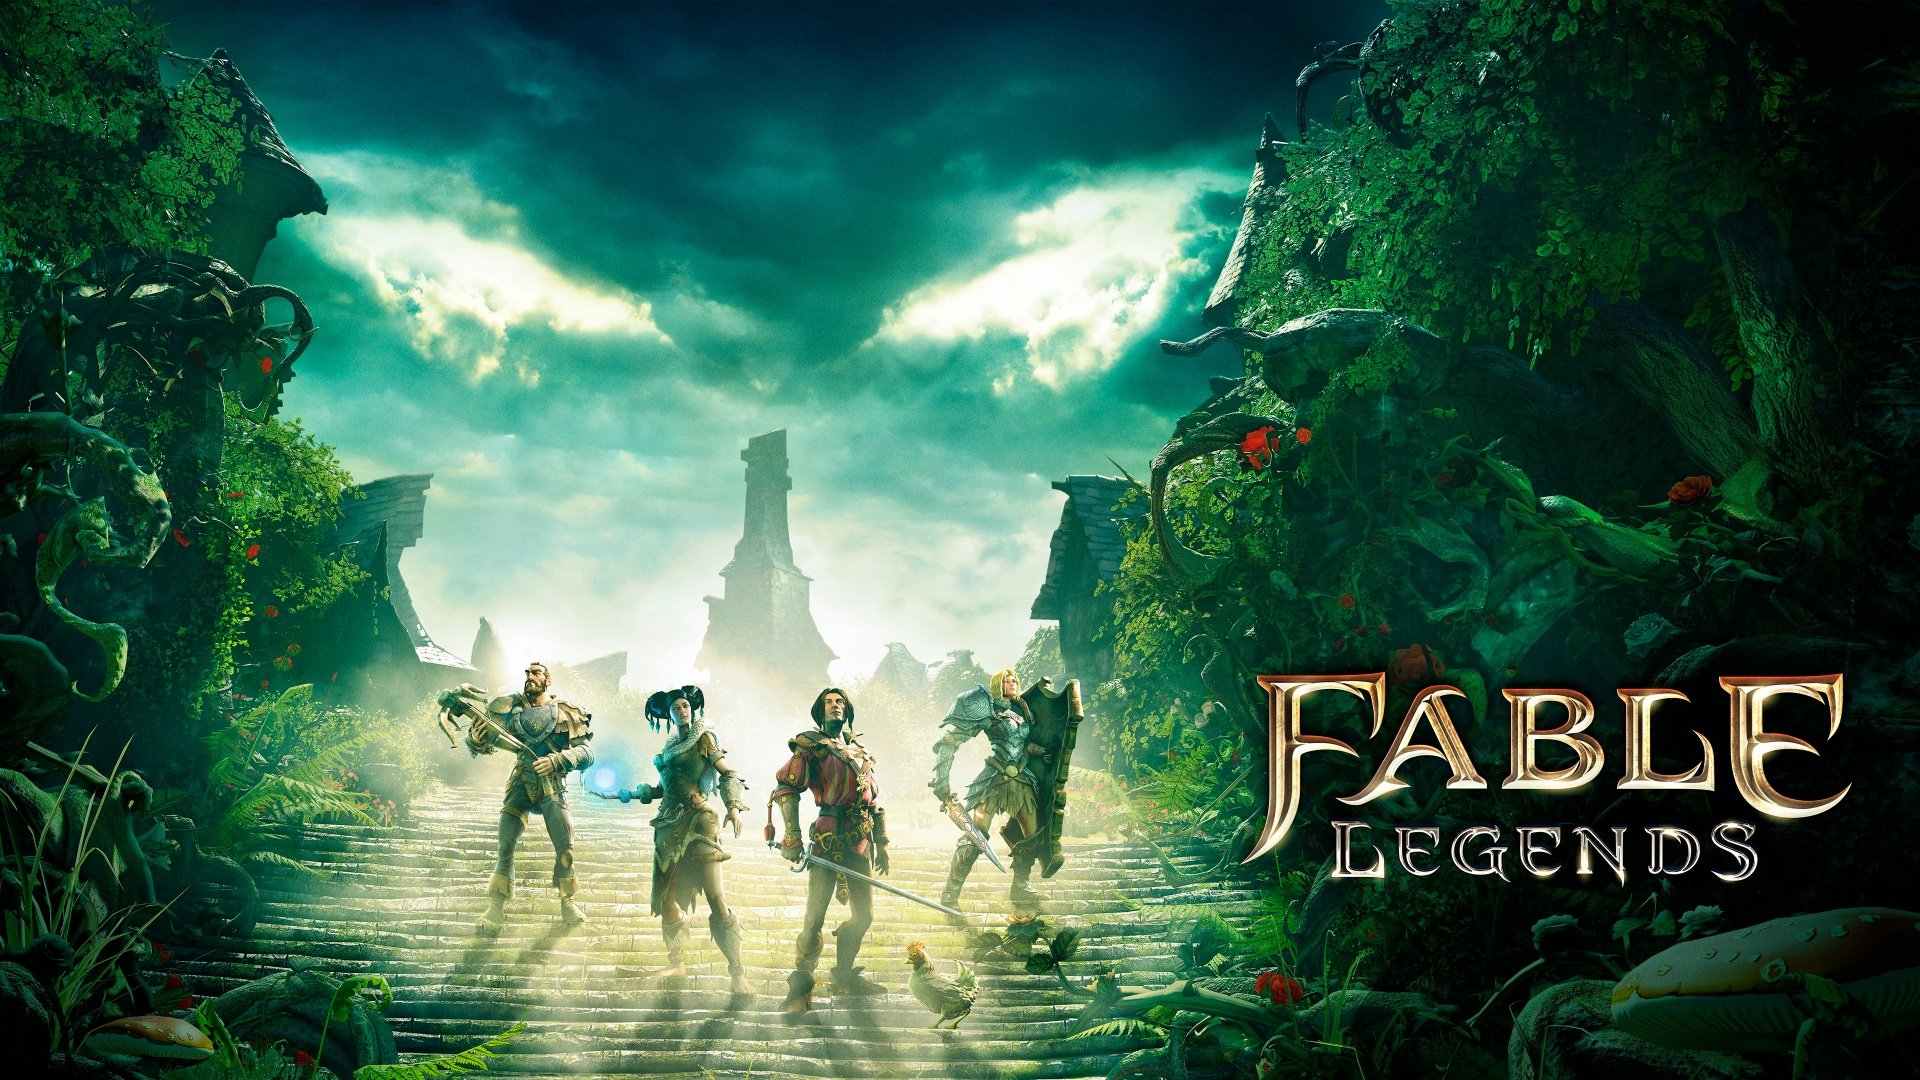 Fable Legends Game Wallpaper 1920x1080